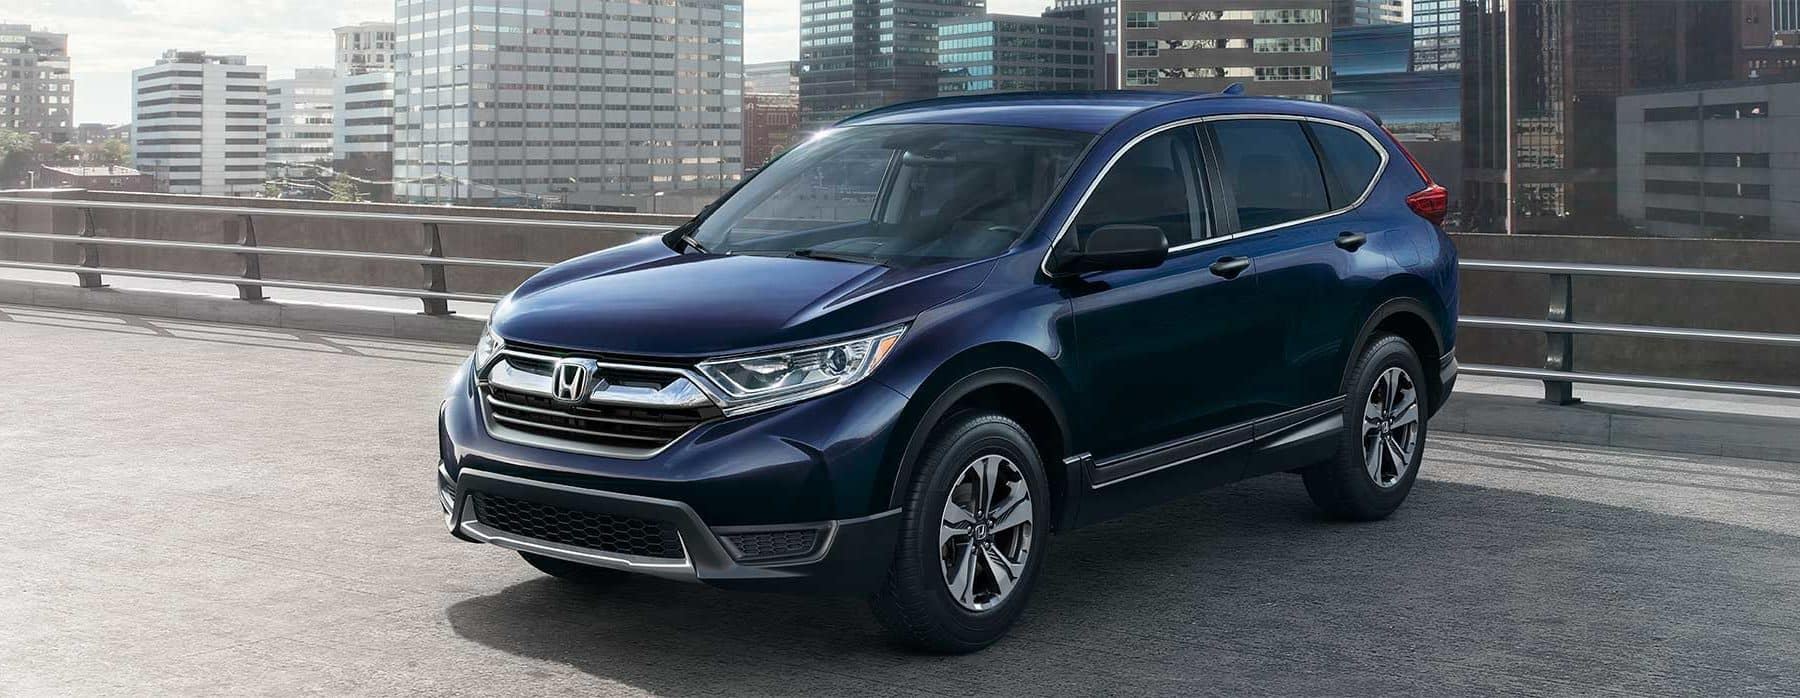 2018 Honda CR-V Configurations header